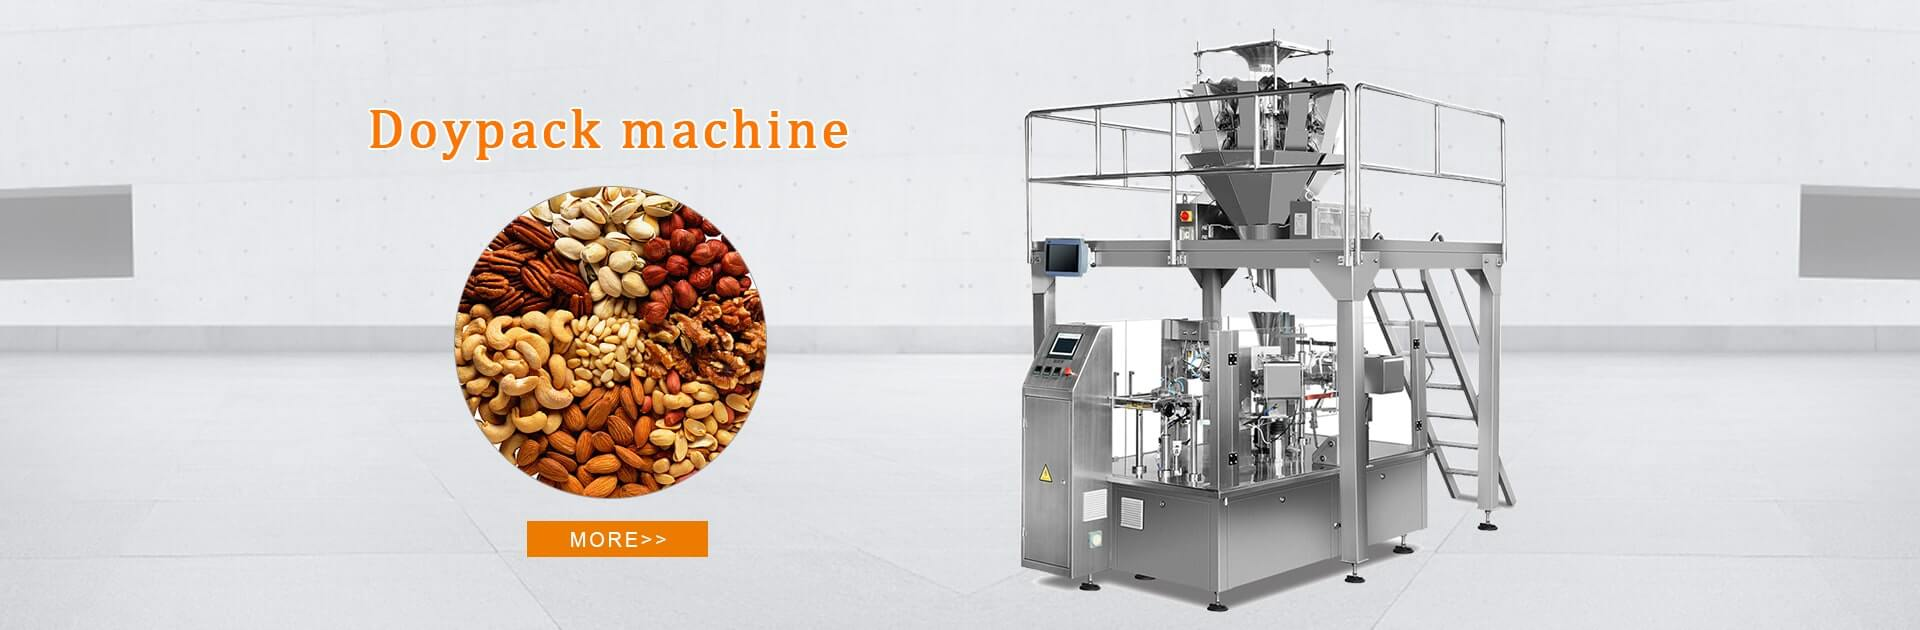 rotay packging machine